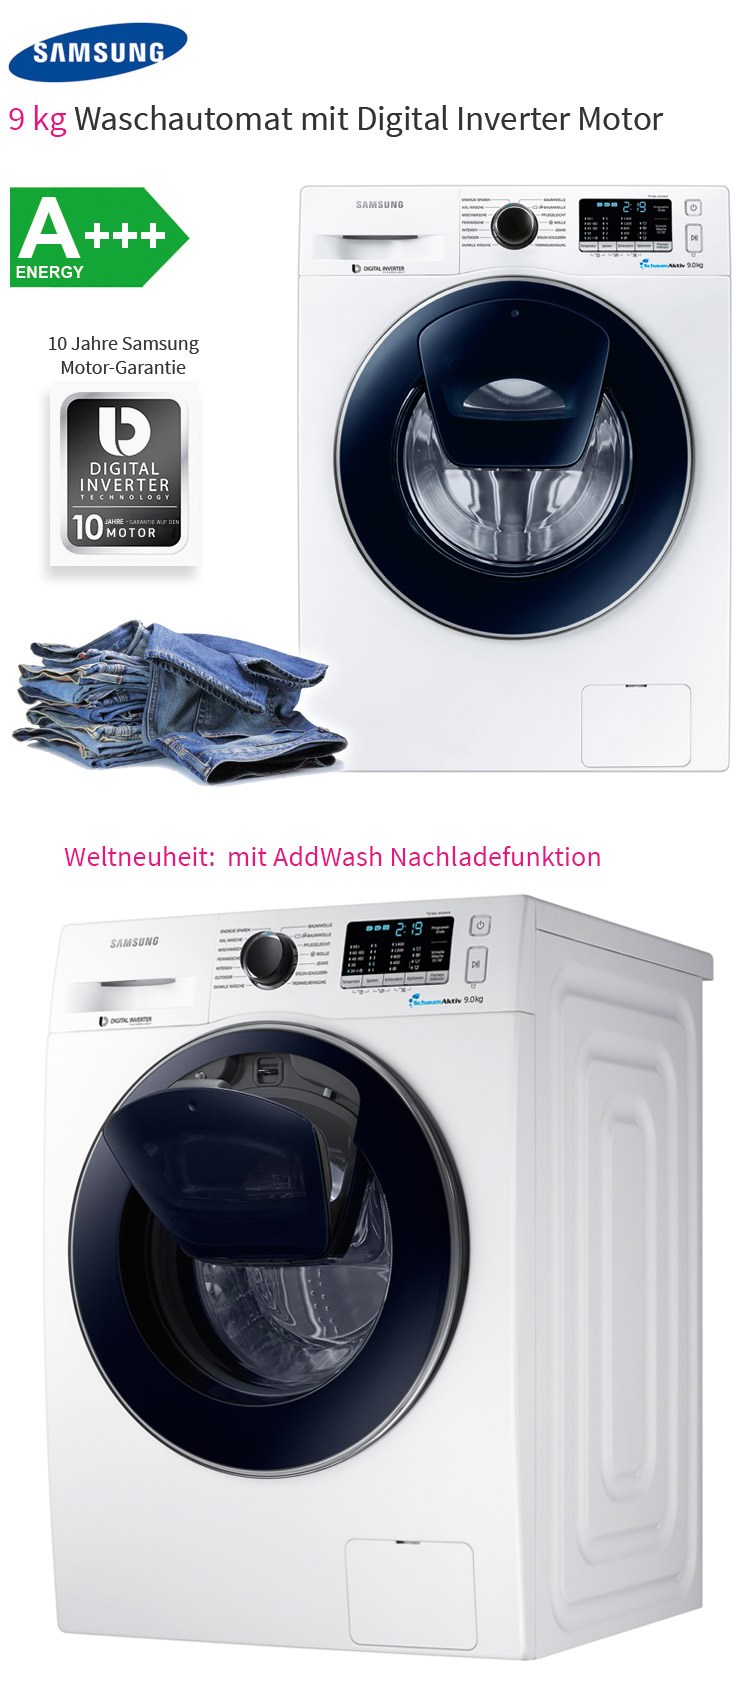 samsung 9 kg addwash waschmaschine a nachlade funktion. Black Bedroom Furniture Sets. Home Design Ideas